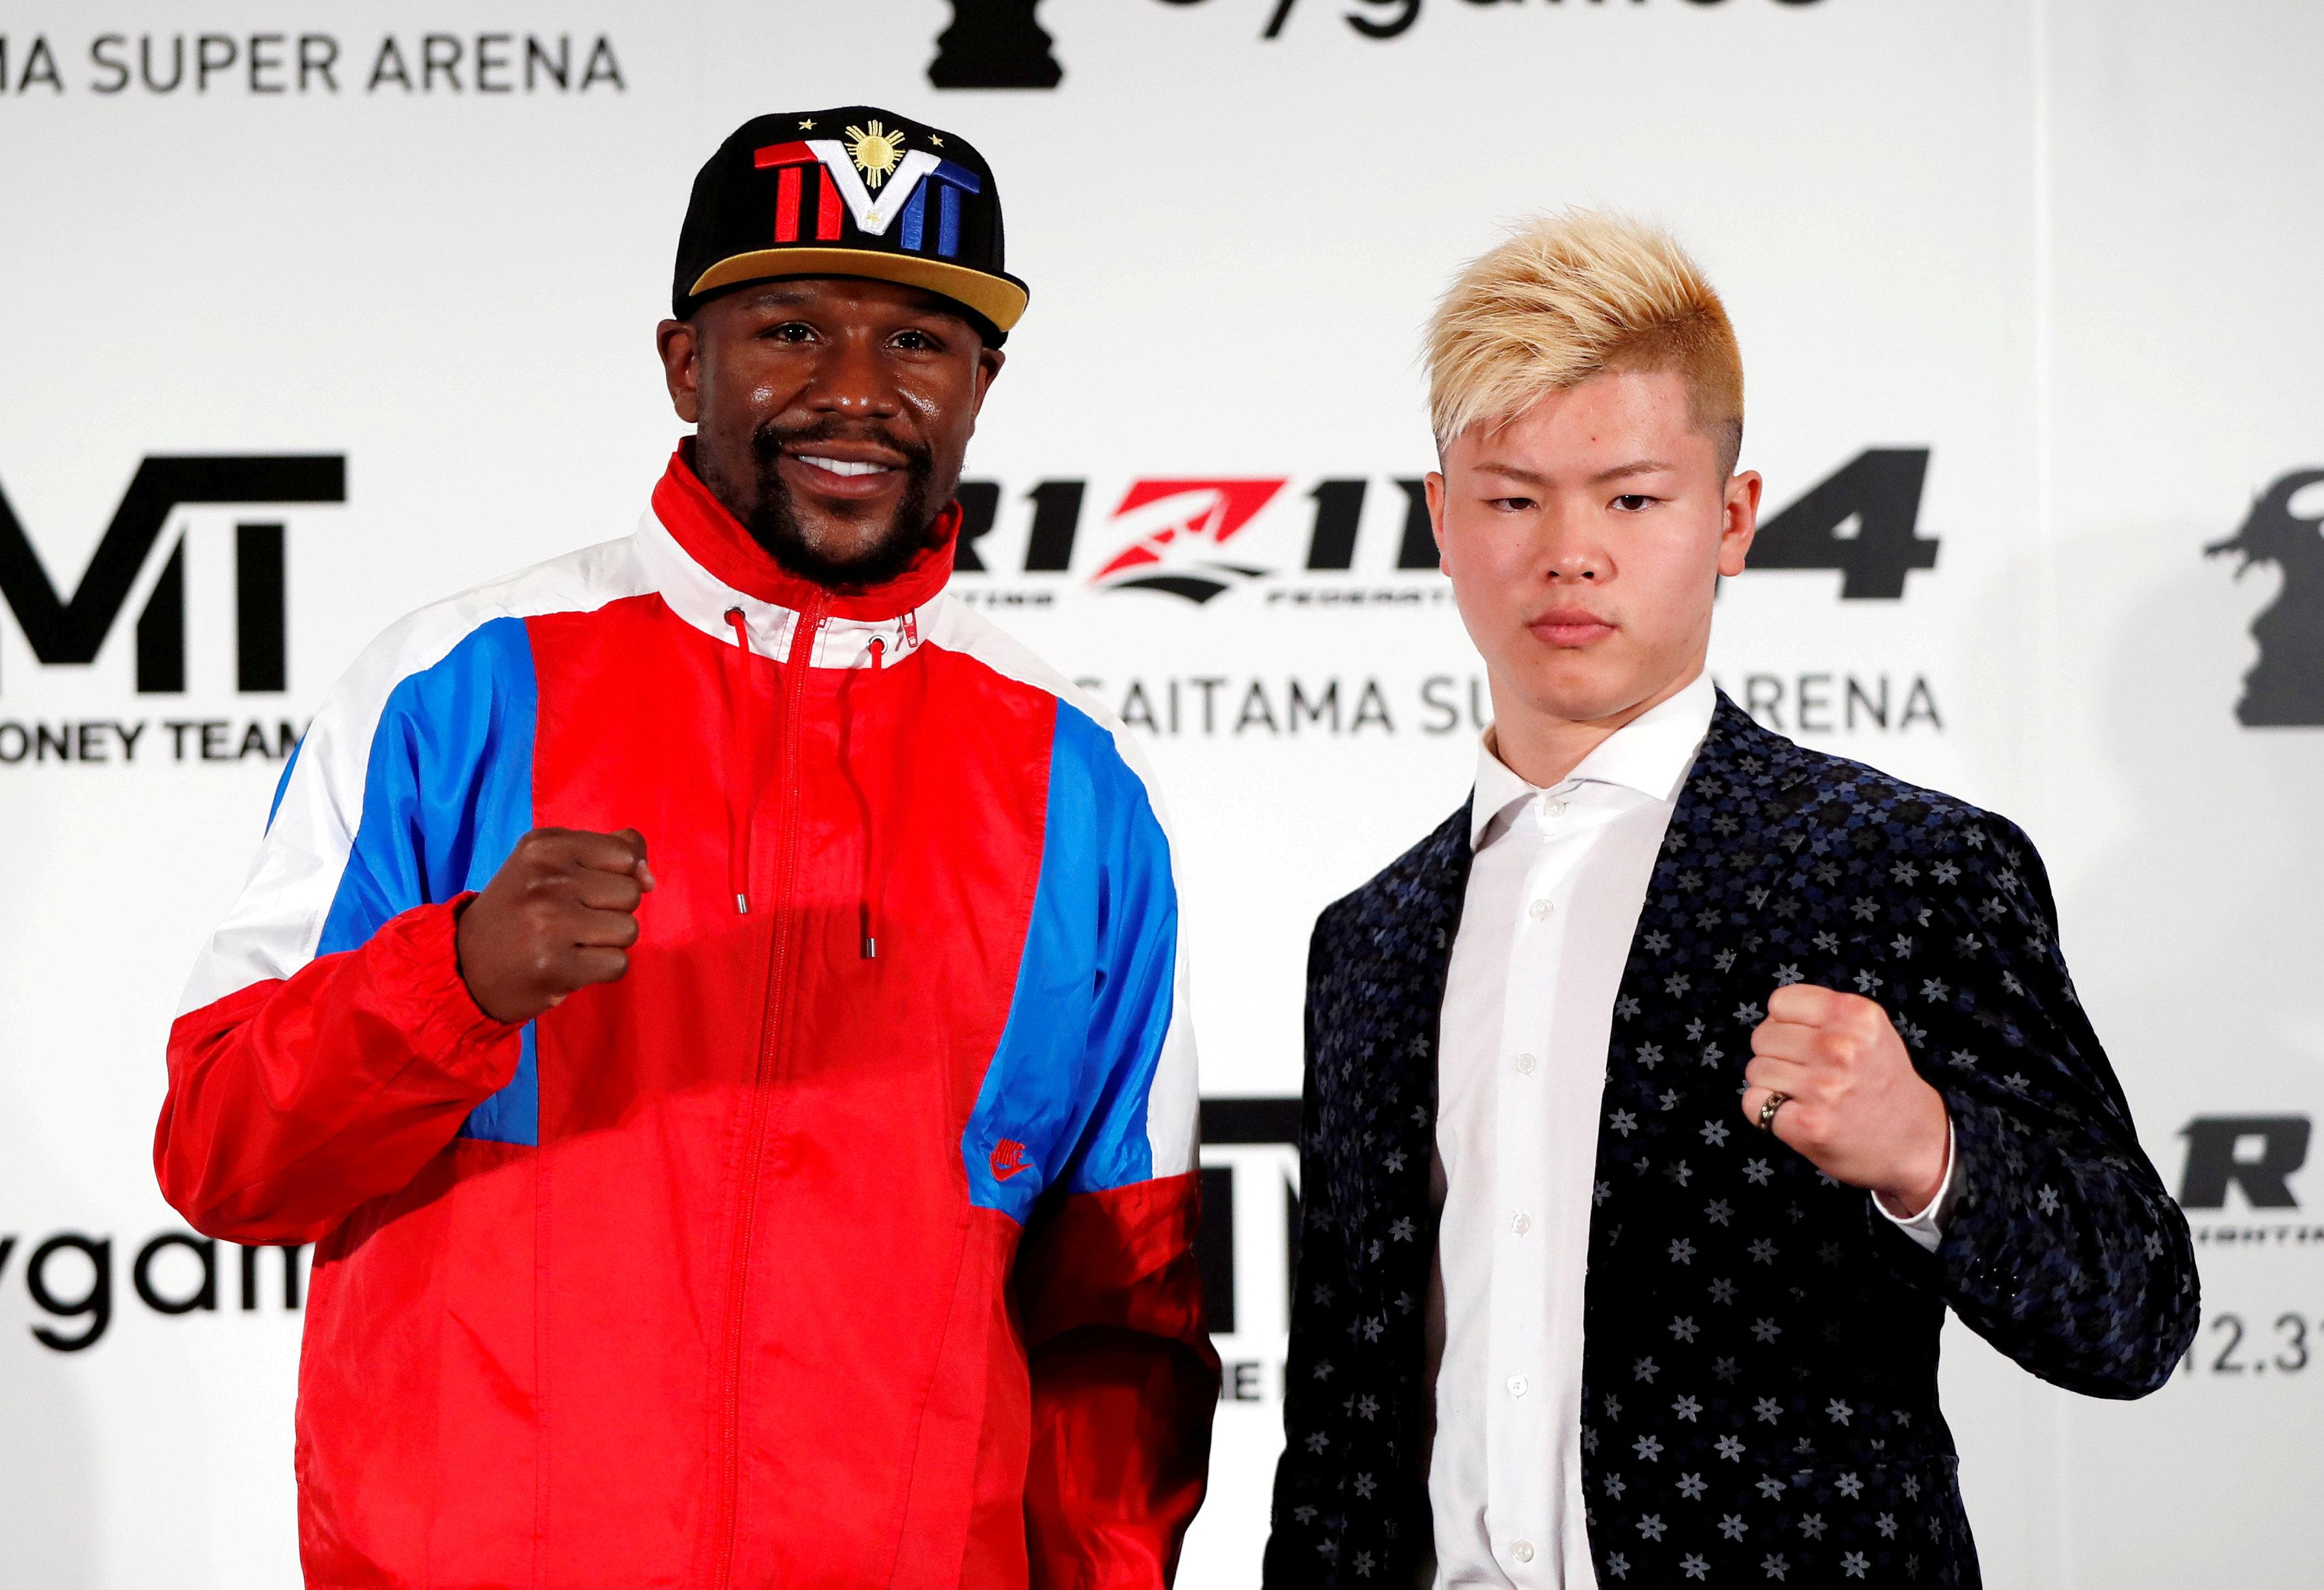 Floyd Mayweather's fight with Tenshin Nasukawa could be back on after all